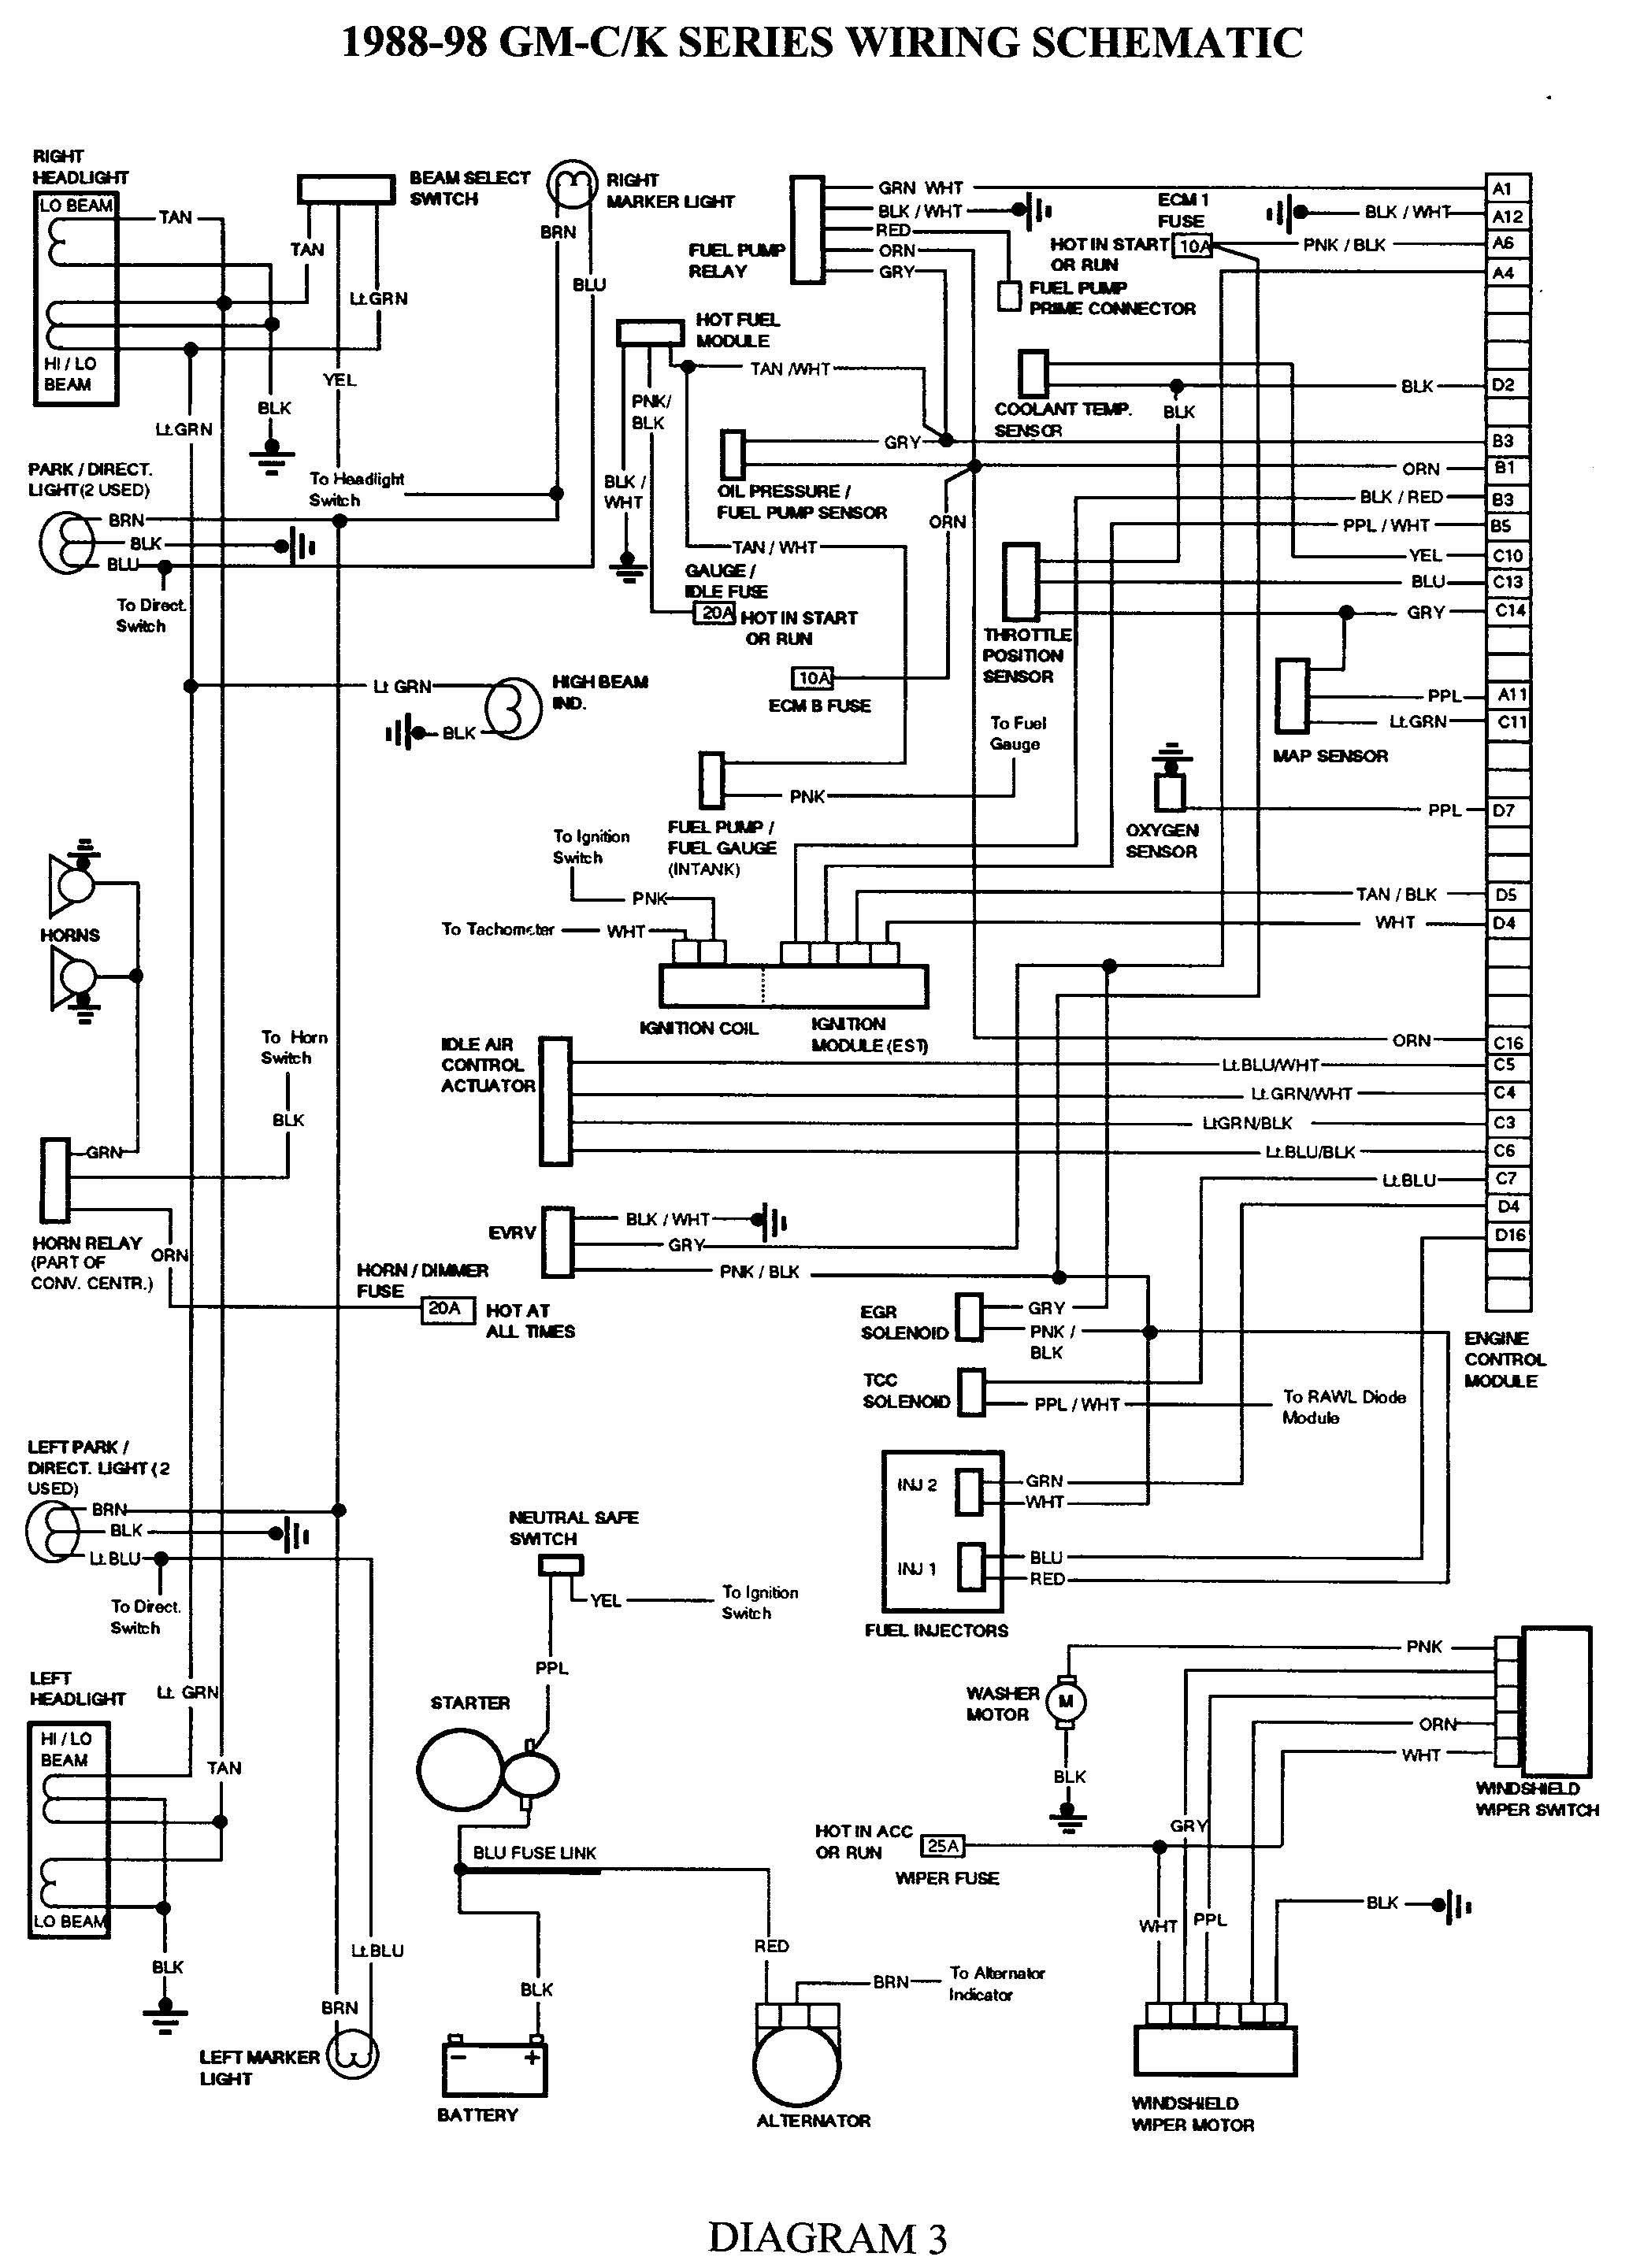 2003 Chevy Trailblazer Single Light Wire Diagram Gmgm Wiring Harness Diagram 88 98 with Images Of 2003 Chevy Trailblazer Single Light Wire Diagram